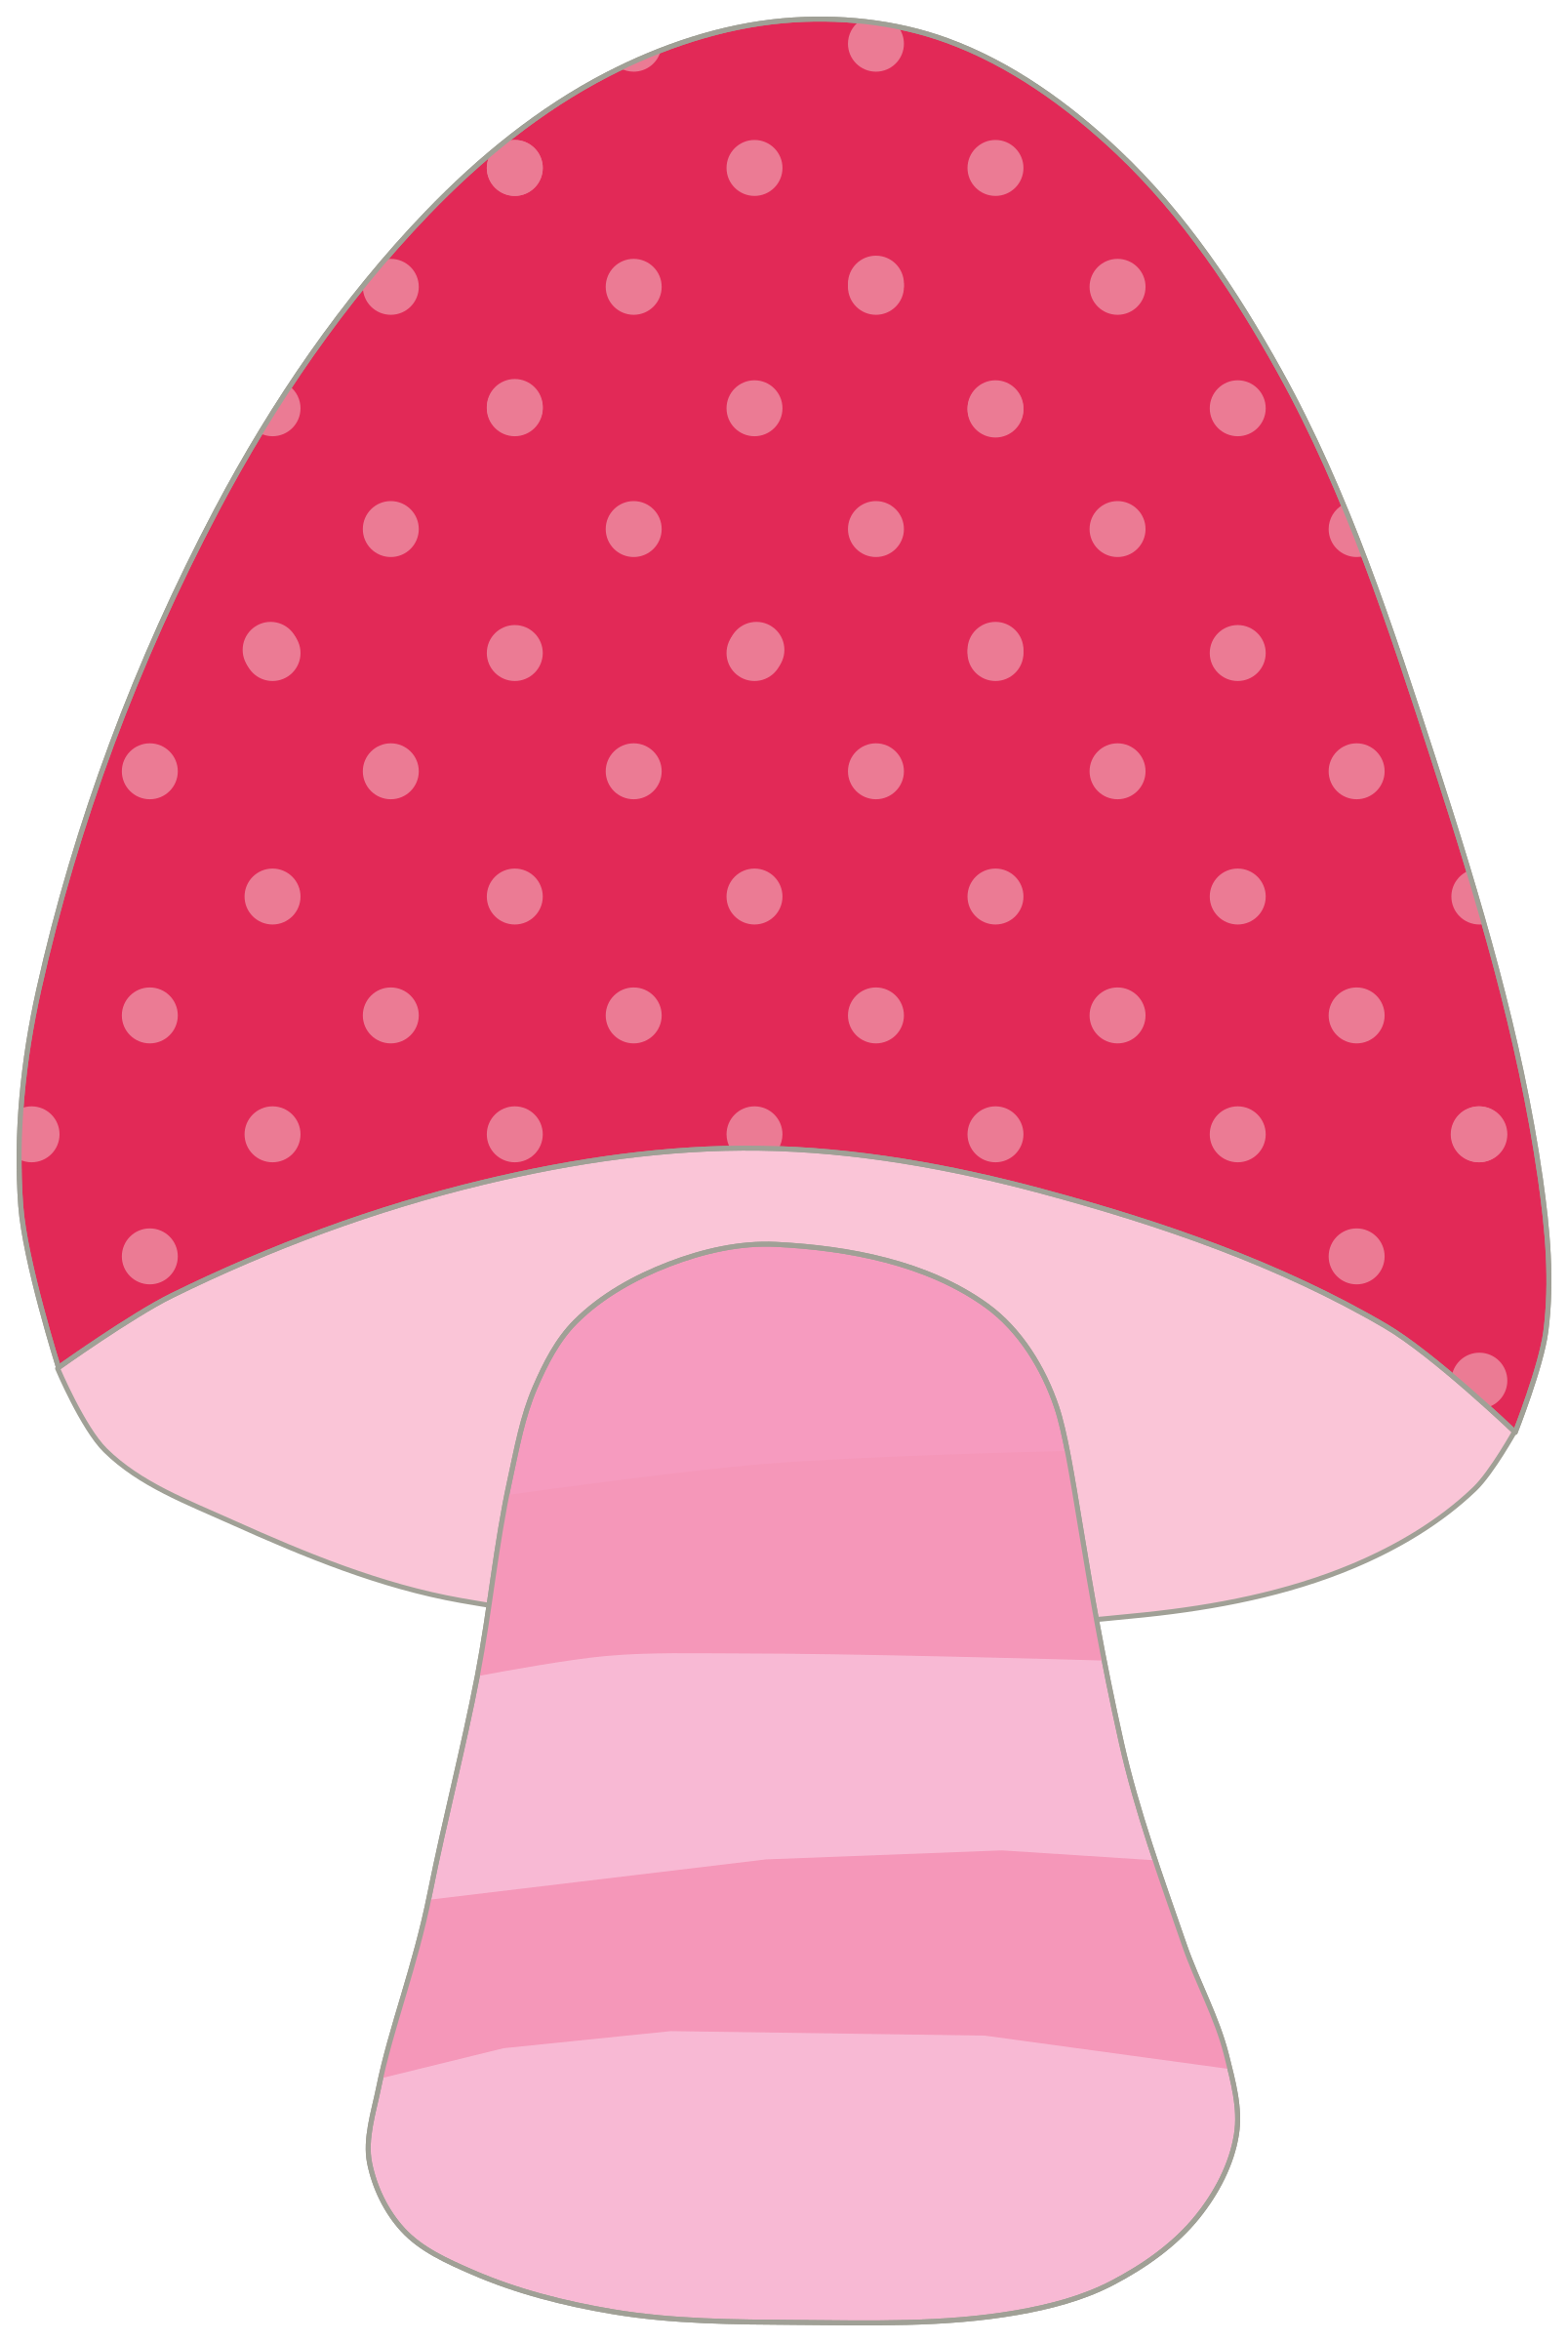 Mushroom 1 by SeriousTux